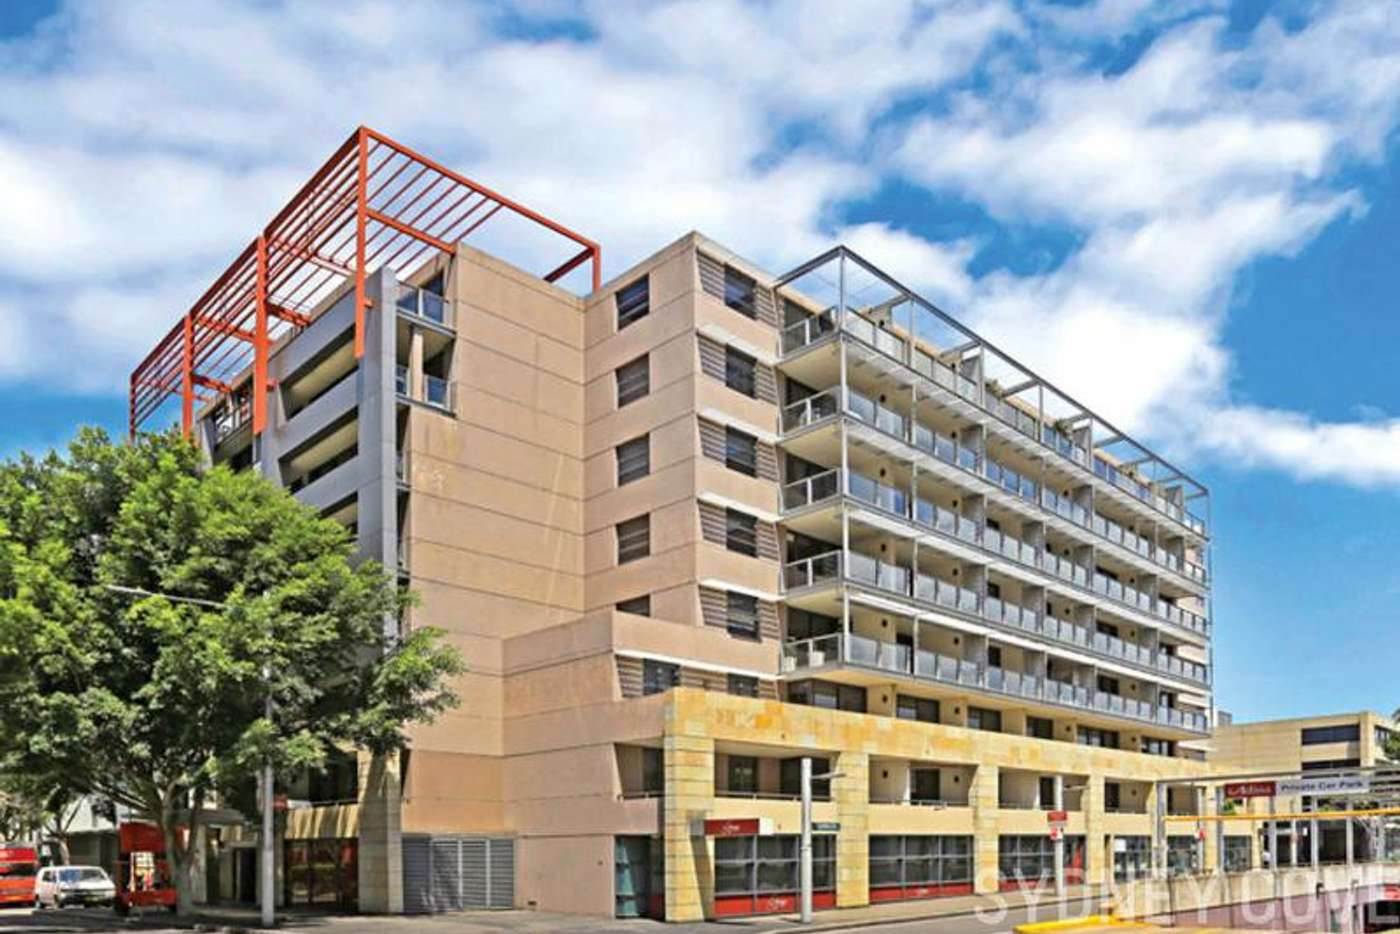 Main view of Homely apartment listing, 45 Shelley Street, Sydney NSW 2000